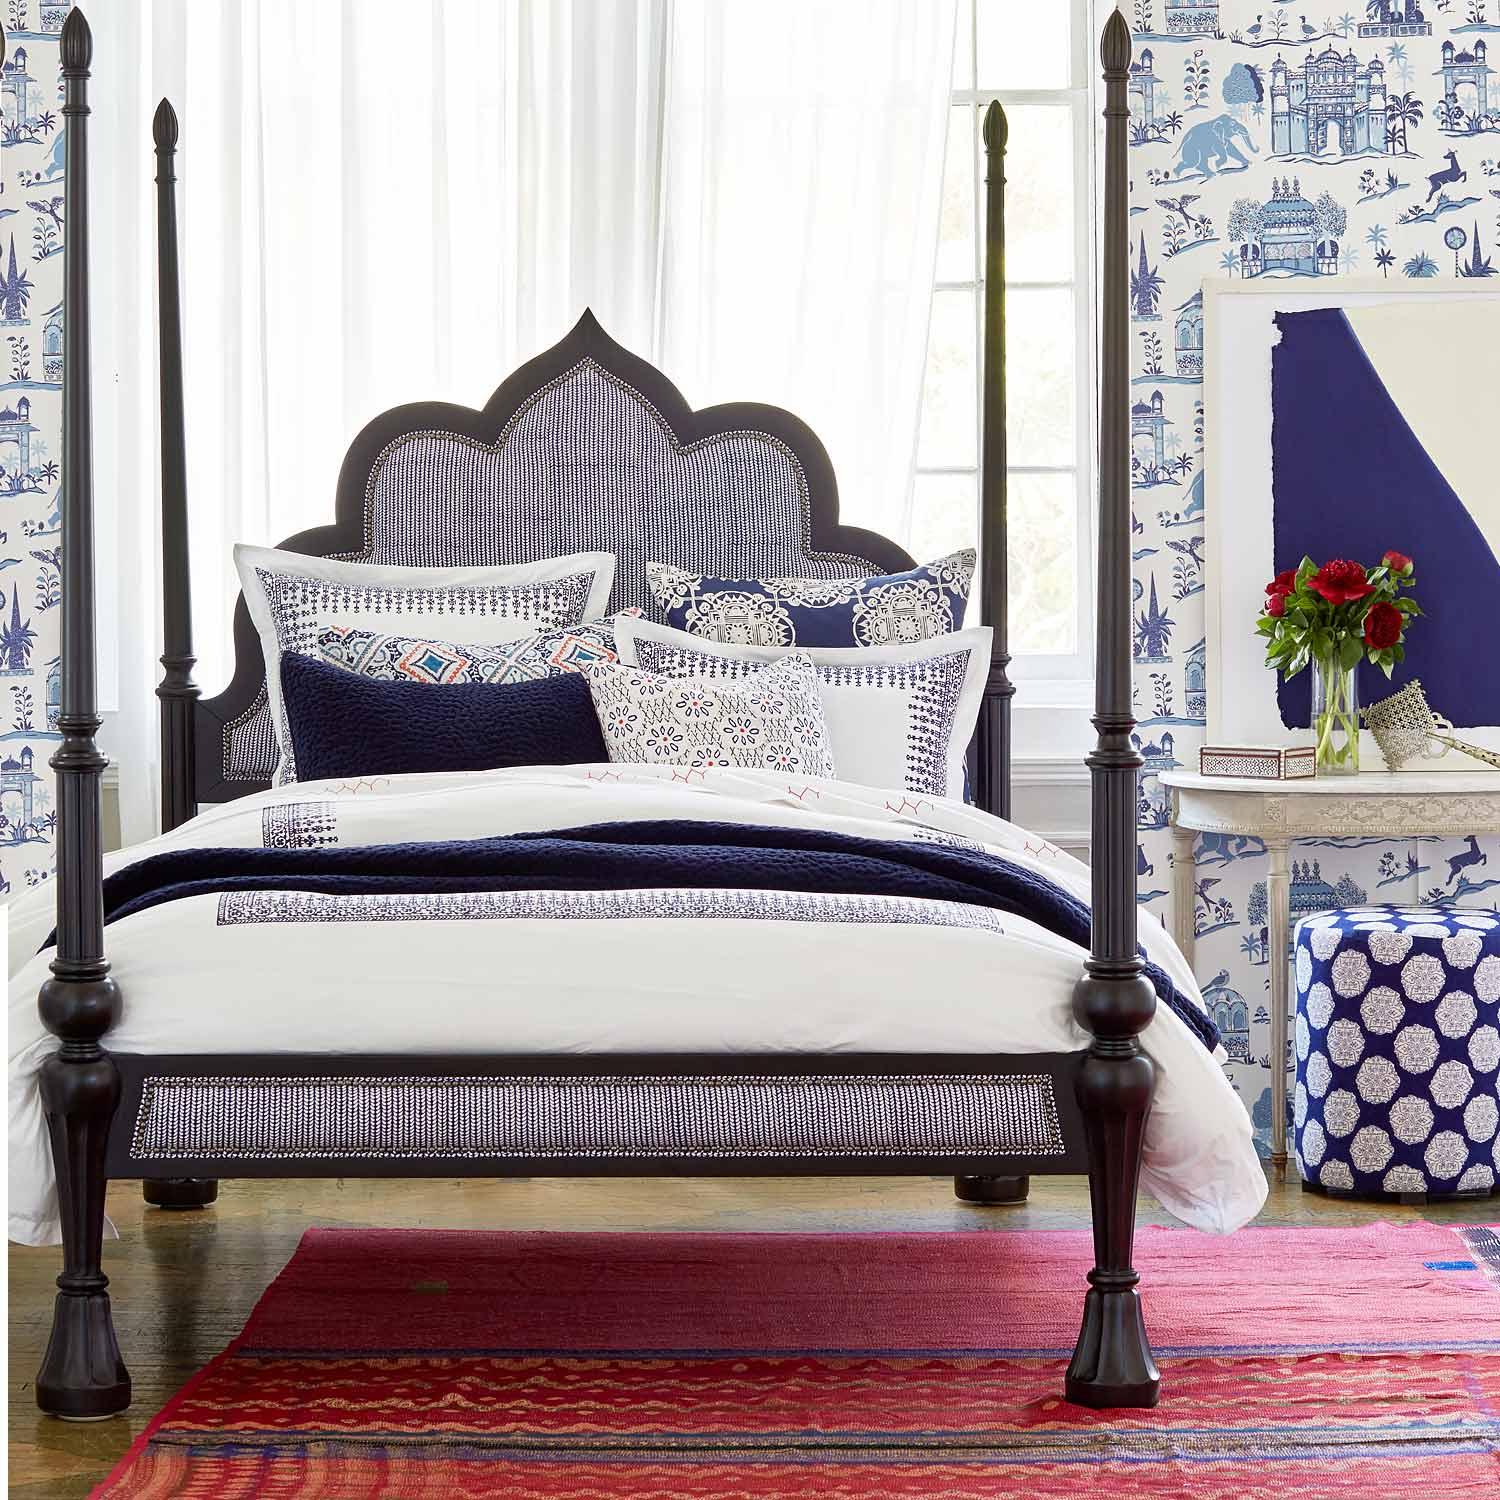 Makki Indigo Bed Collection